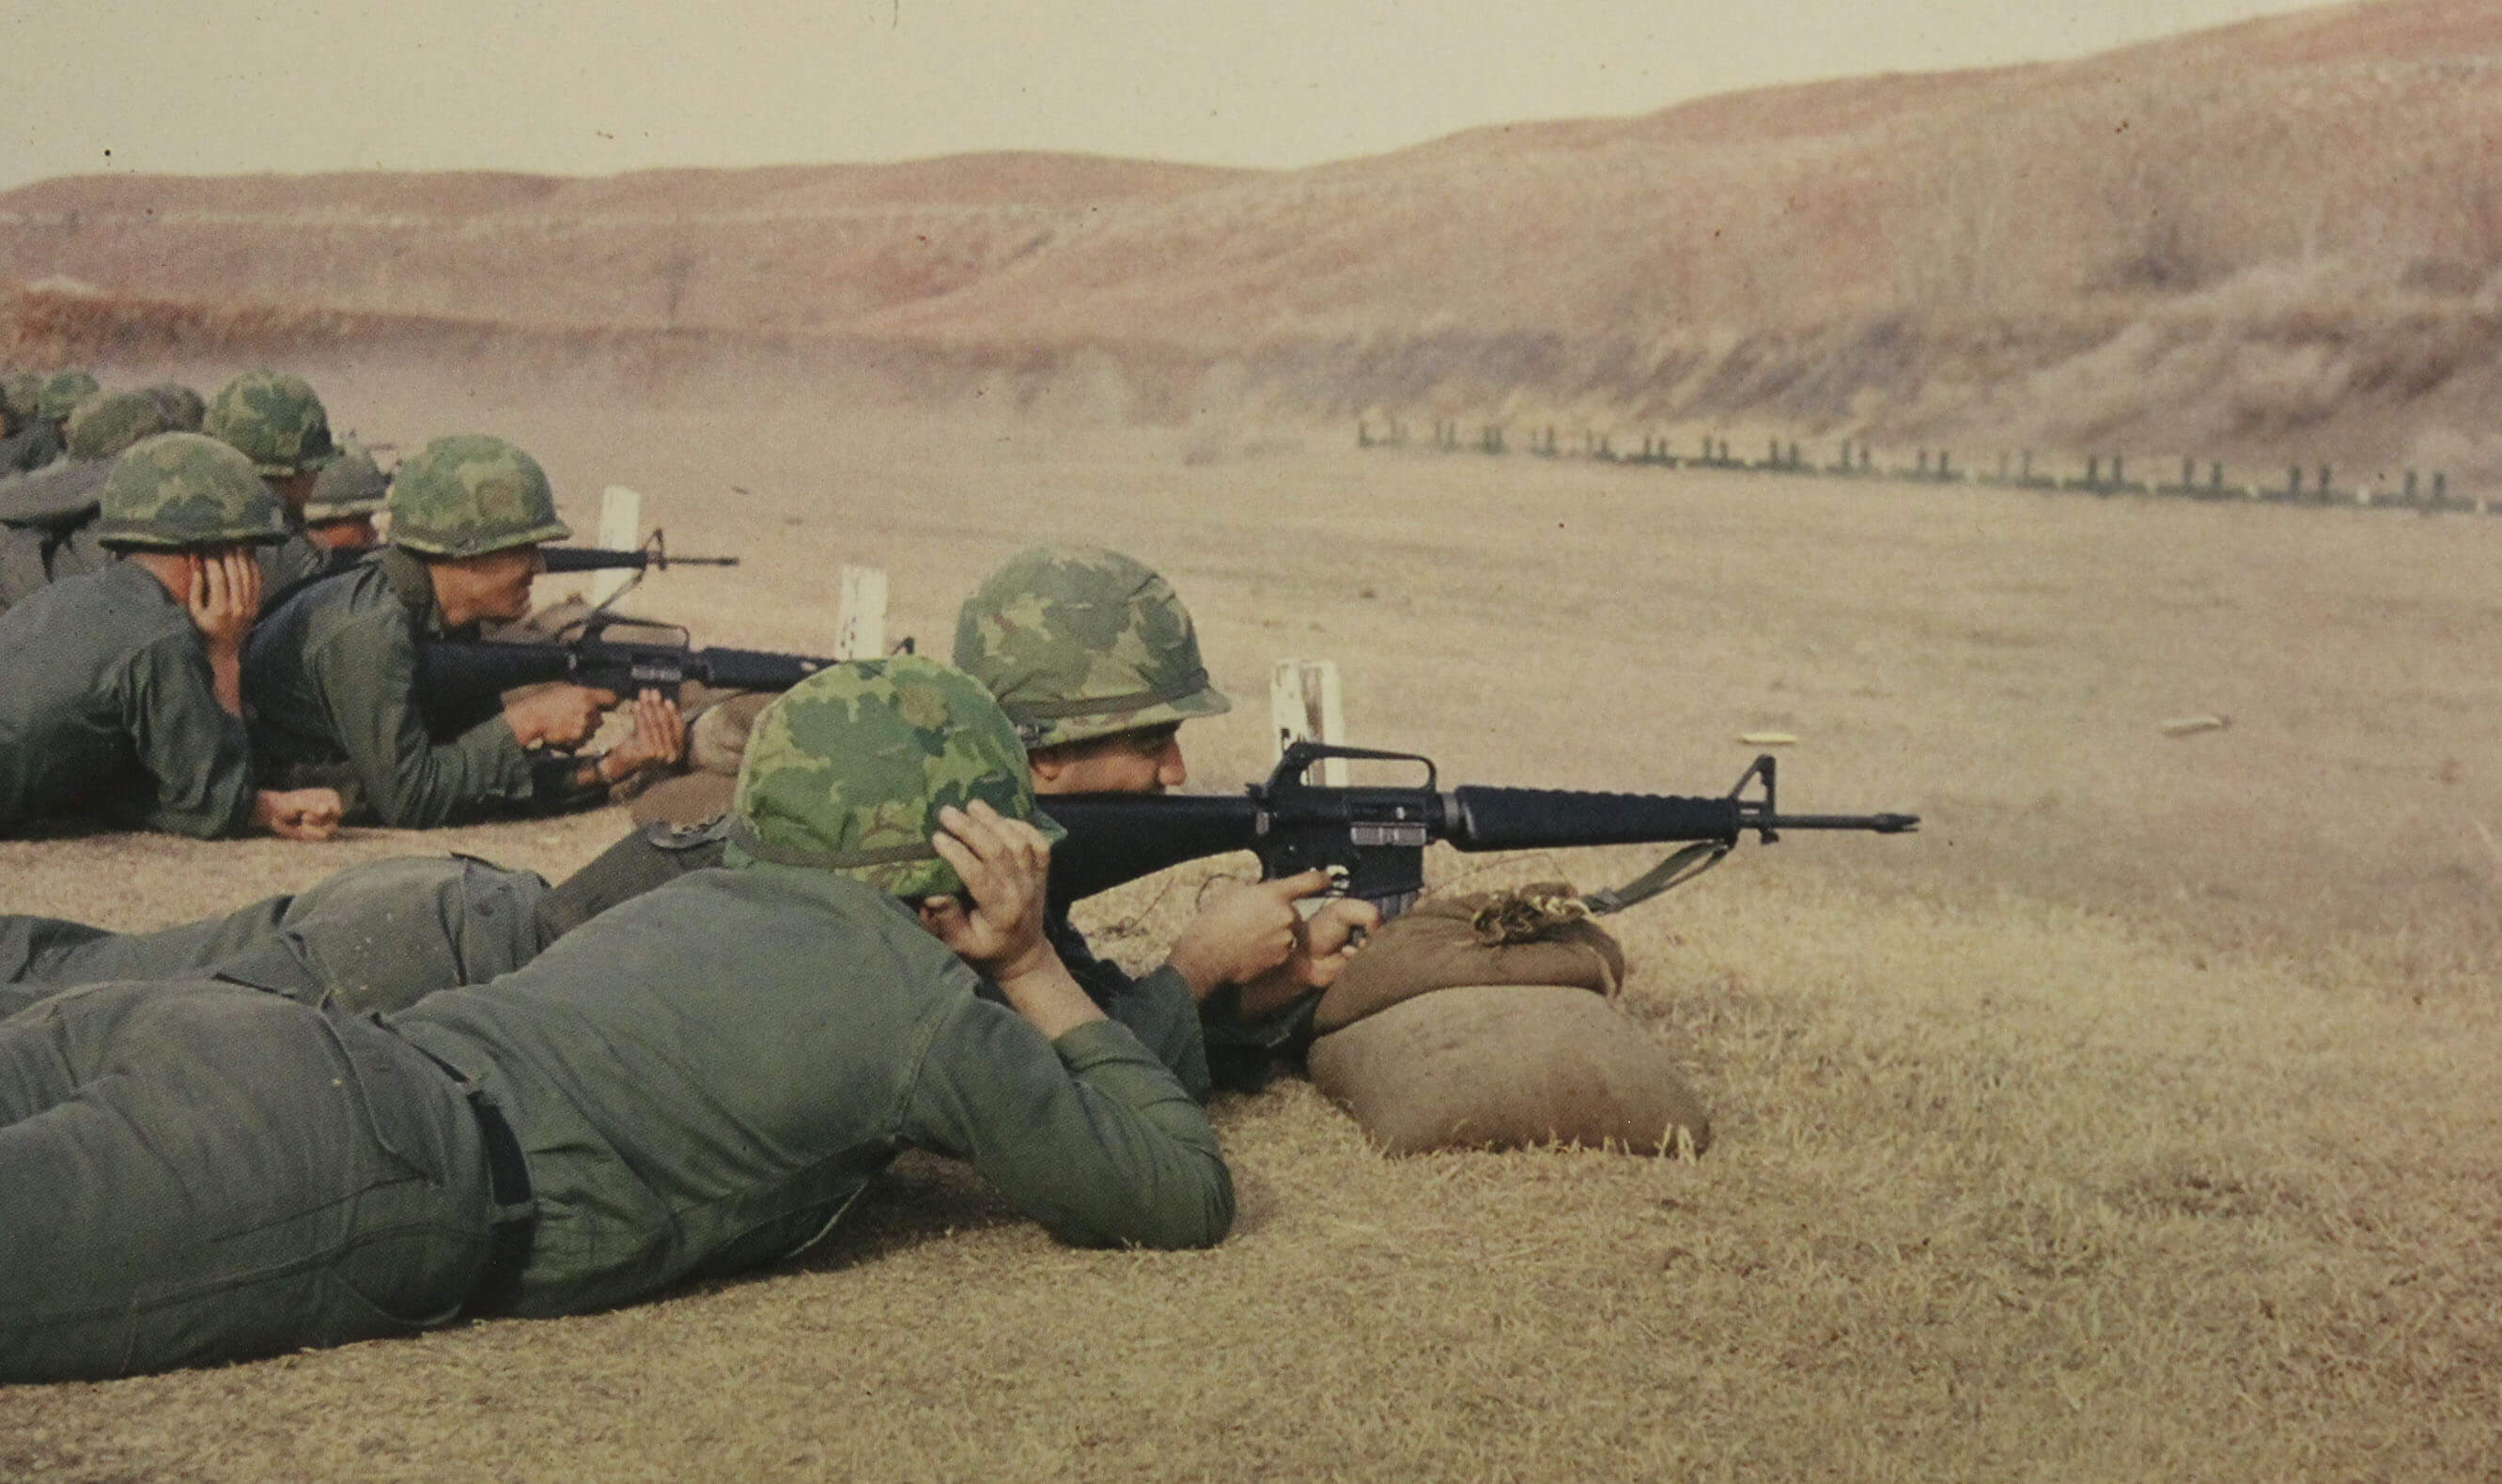 Rows of soldiers on their bellies, taking aim with their rifles at far away targets.